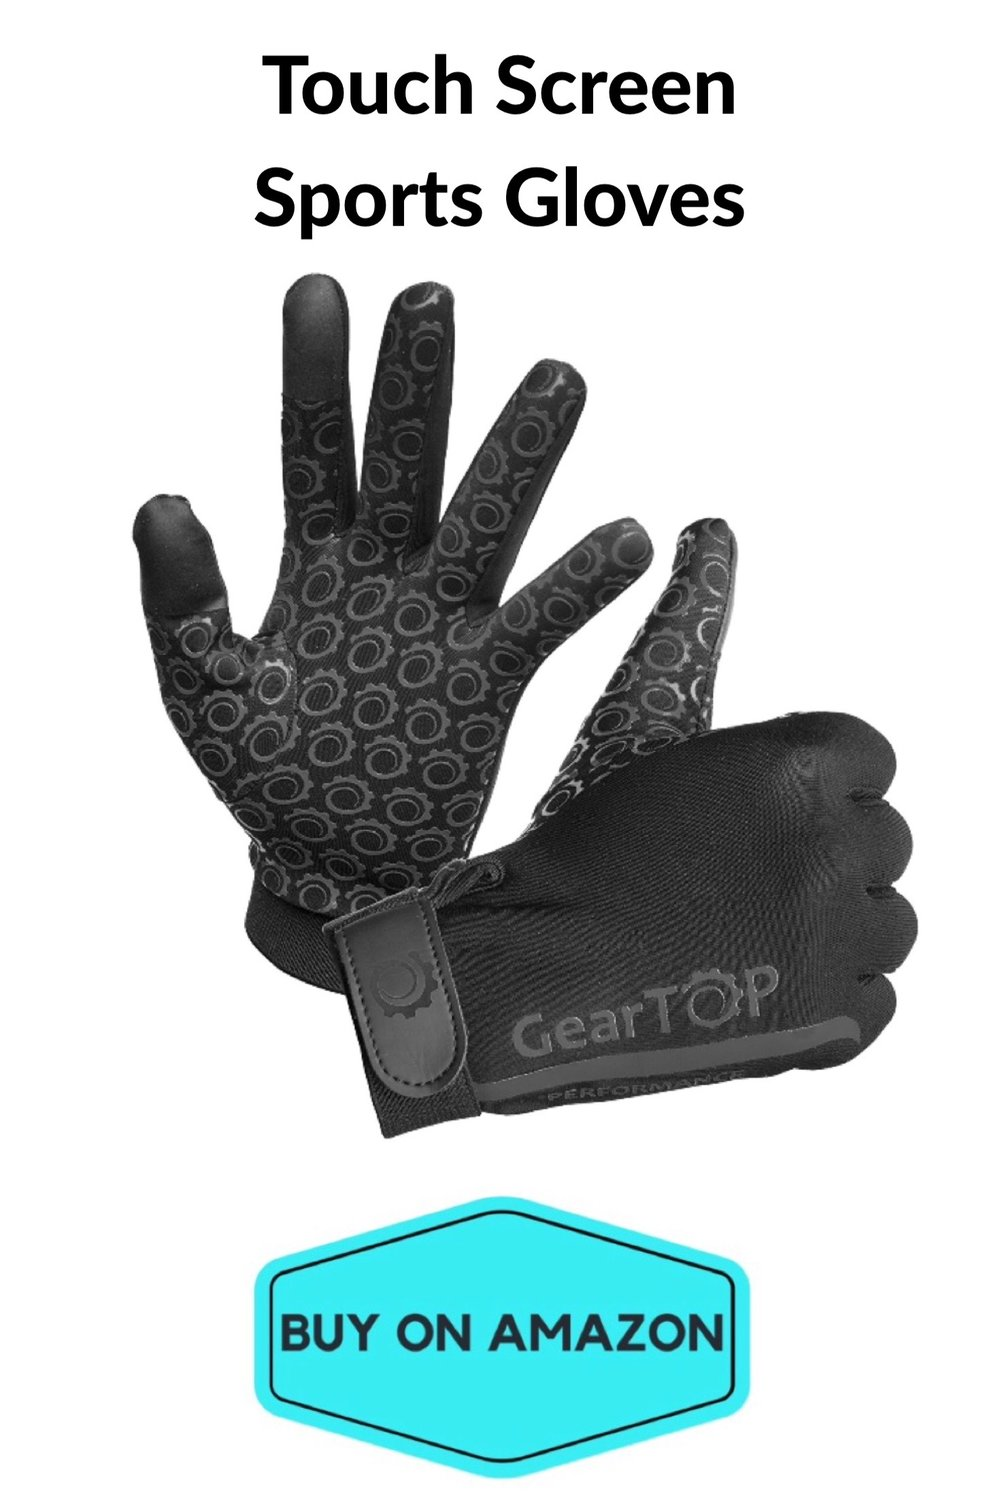 Touch Screen Running Gloves